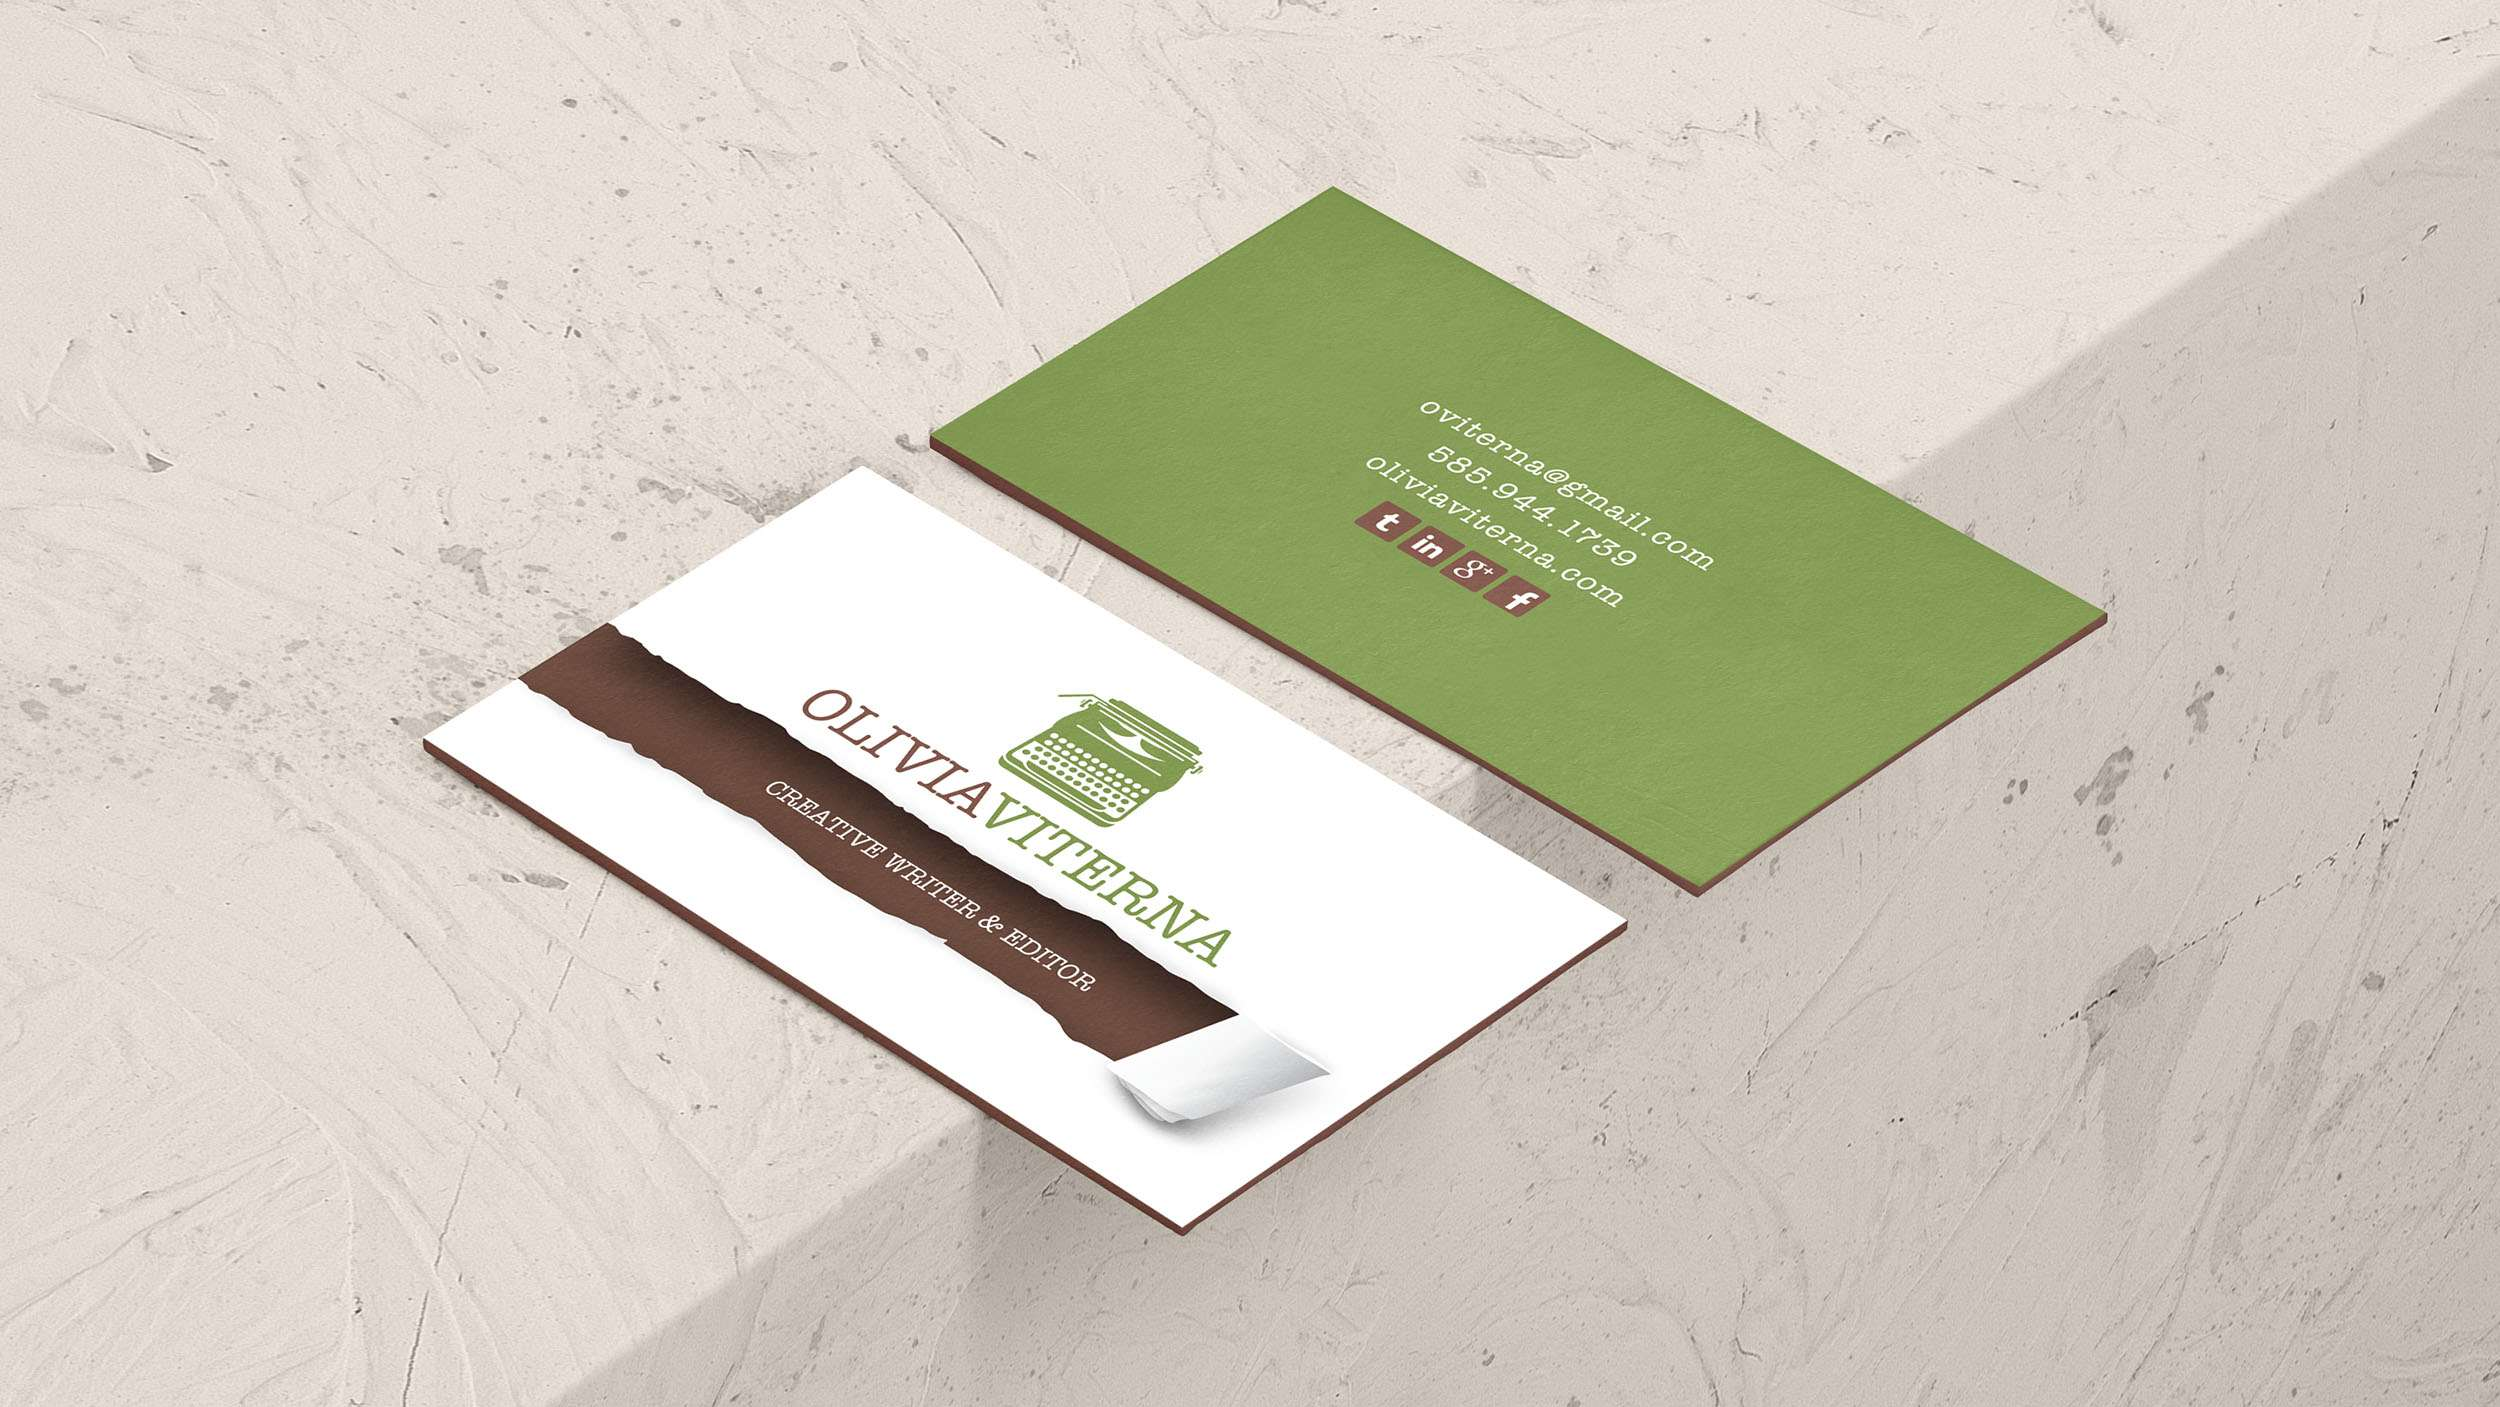 Custom business card design using wripped paper tear and green typewriter.